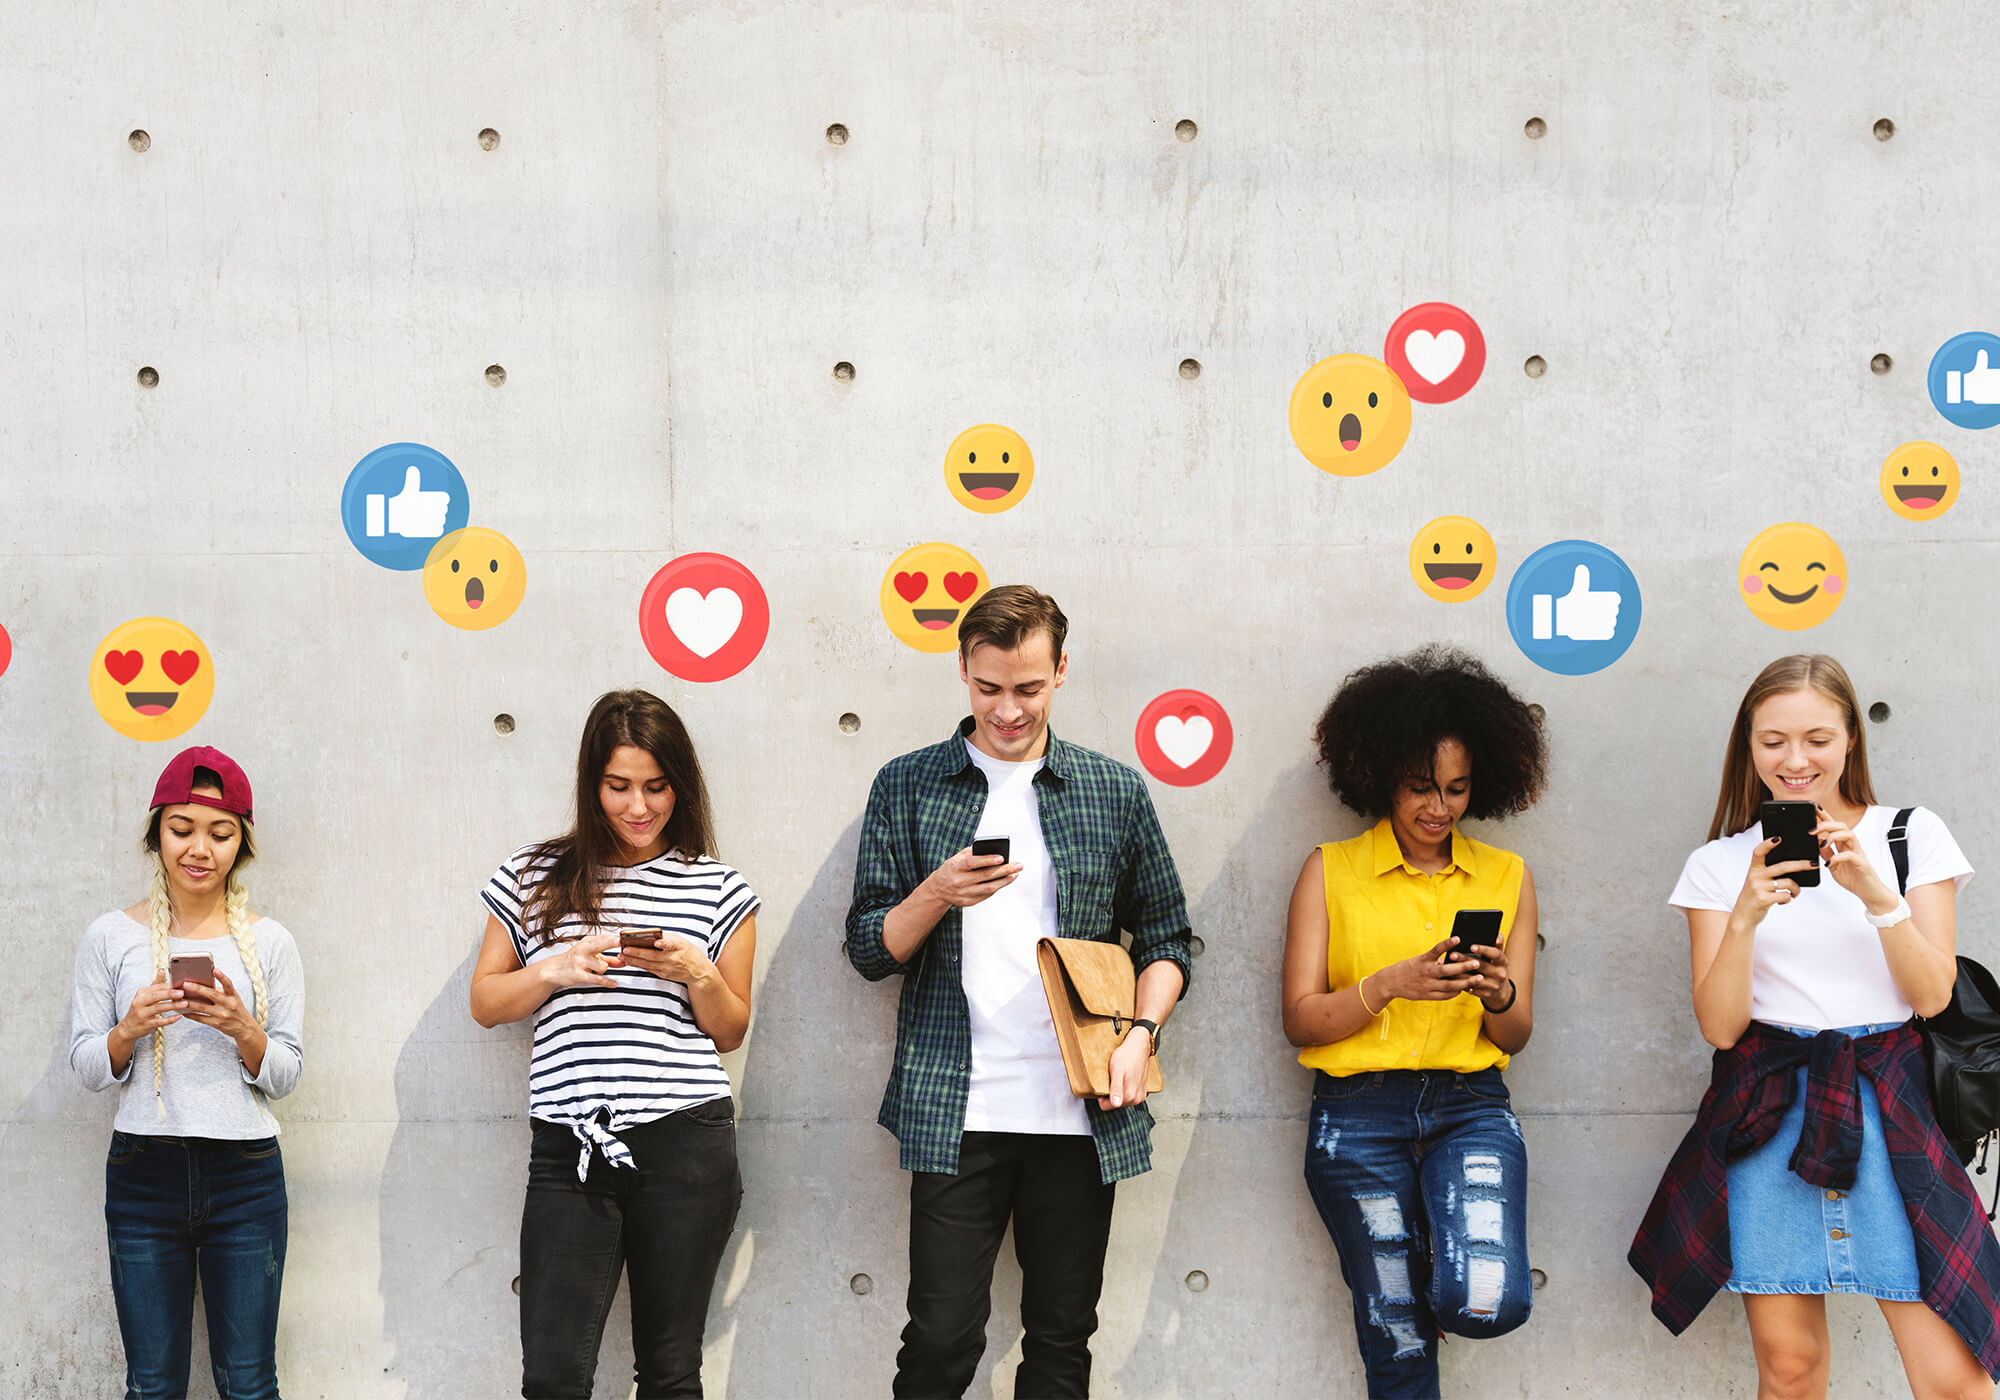 Social Media Icons and Users